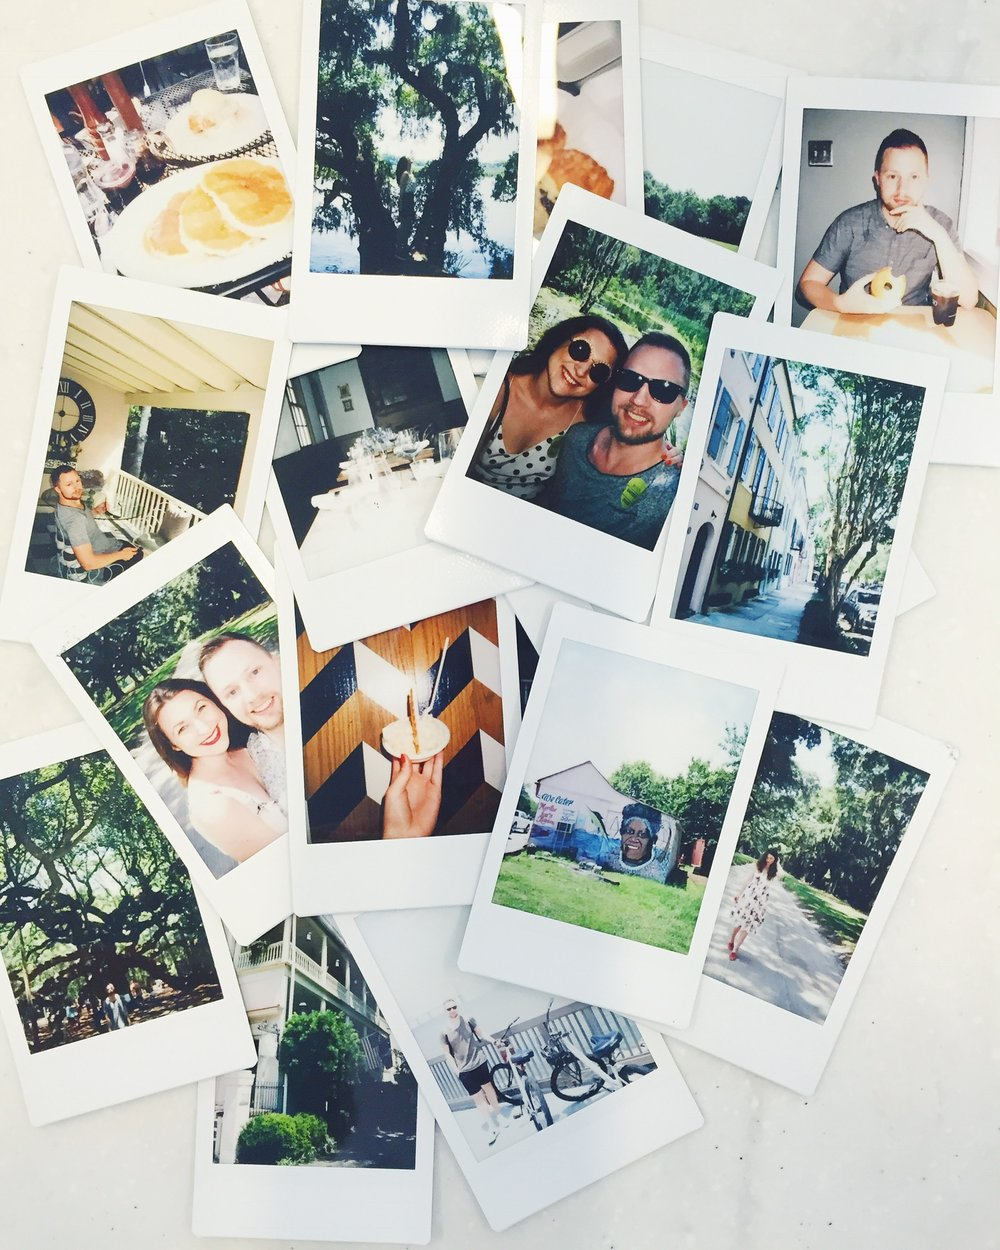 all the polariods! one of my favorite traditions for when we go on trips :)